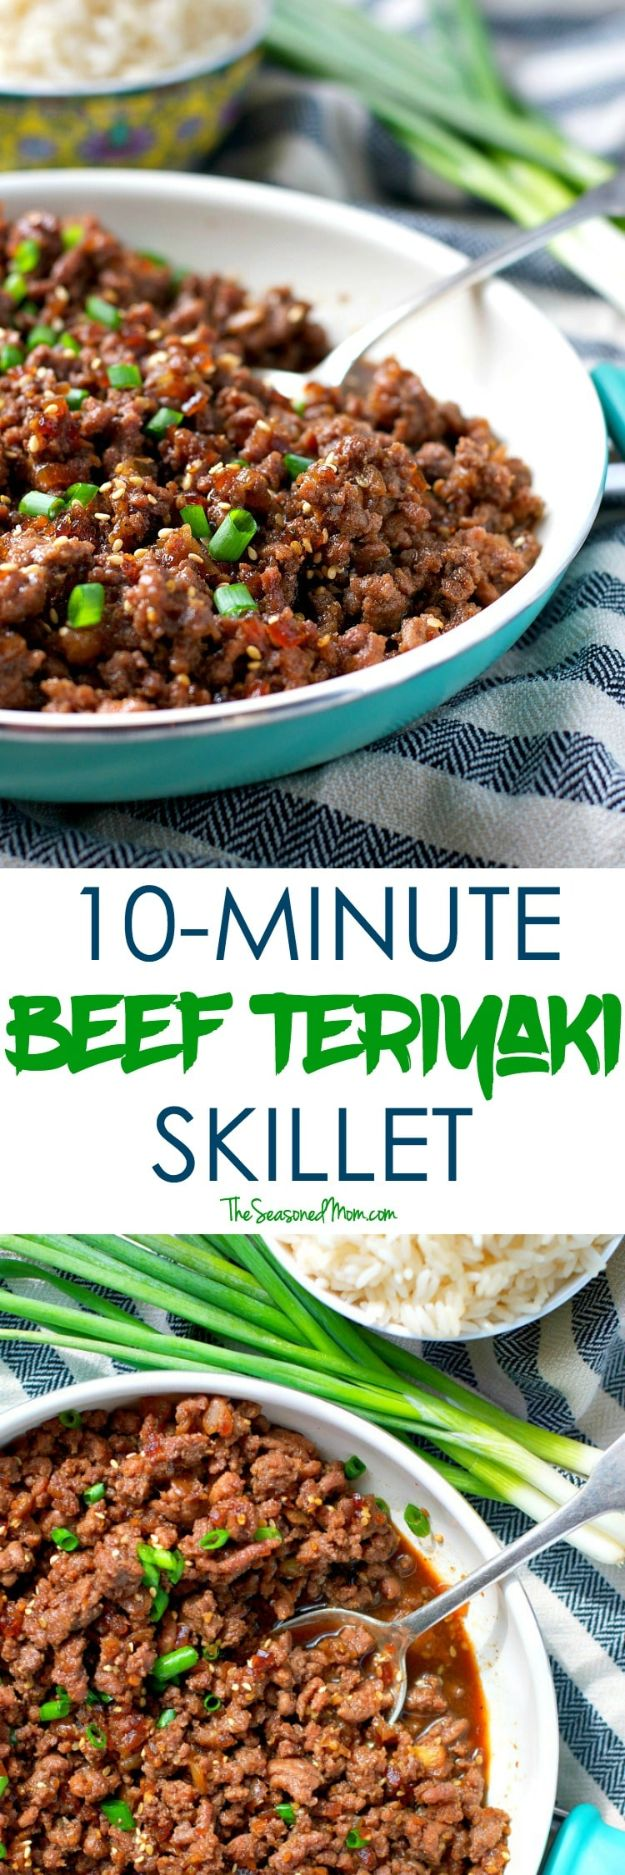 Best Recipes With Ground Beef - 10-Minute Beef Teriyaki Skillet - Easy Dinners and Ground Beef Recipe Ideas - Quick Lunch Salads, Casseroles, Tacos, One Skillet Meals - Healthy Crockpot Foods With Hamburger Meat - Mexican Casserole, Instant Pot Carne Molida, Low Carb and Keto Diet - Rice, Pasta, Potatoes and Crescent Rolls